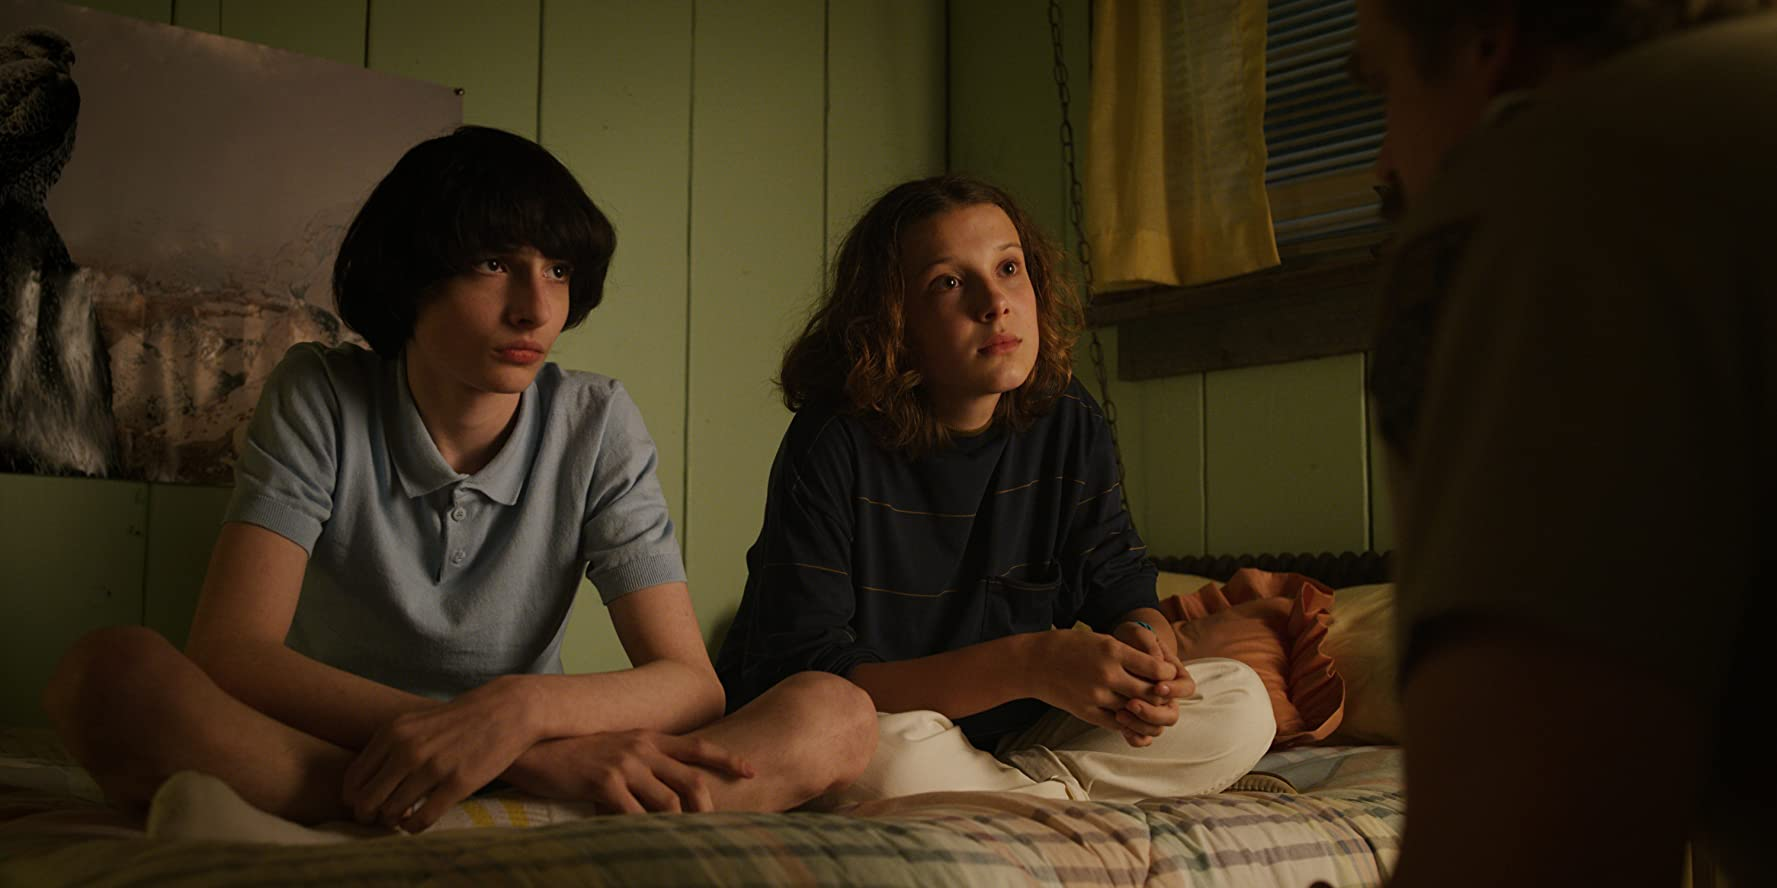 David Harbour, Millie Bobby Brown, and Finn Wolfhard in Stranger Things (2016)